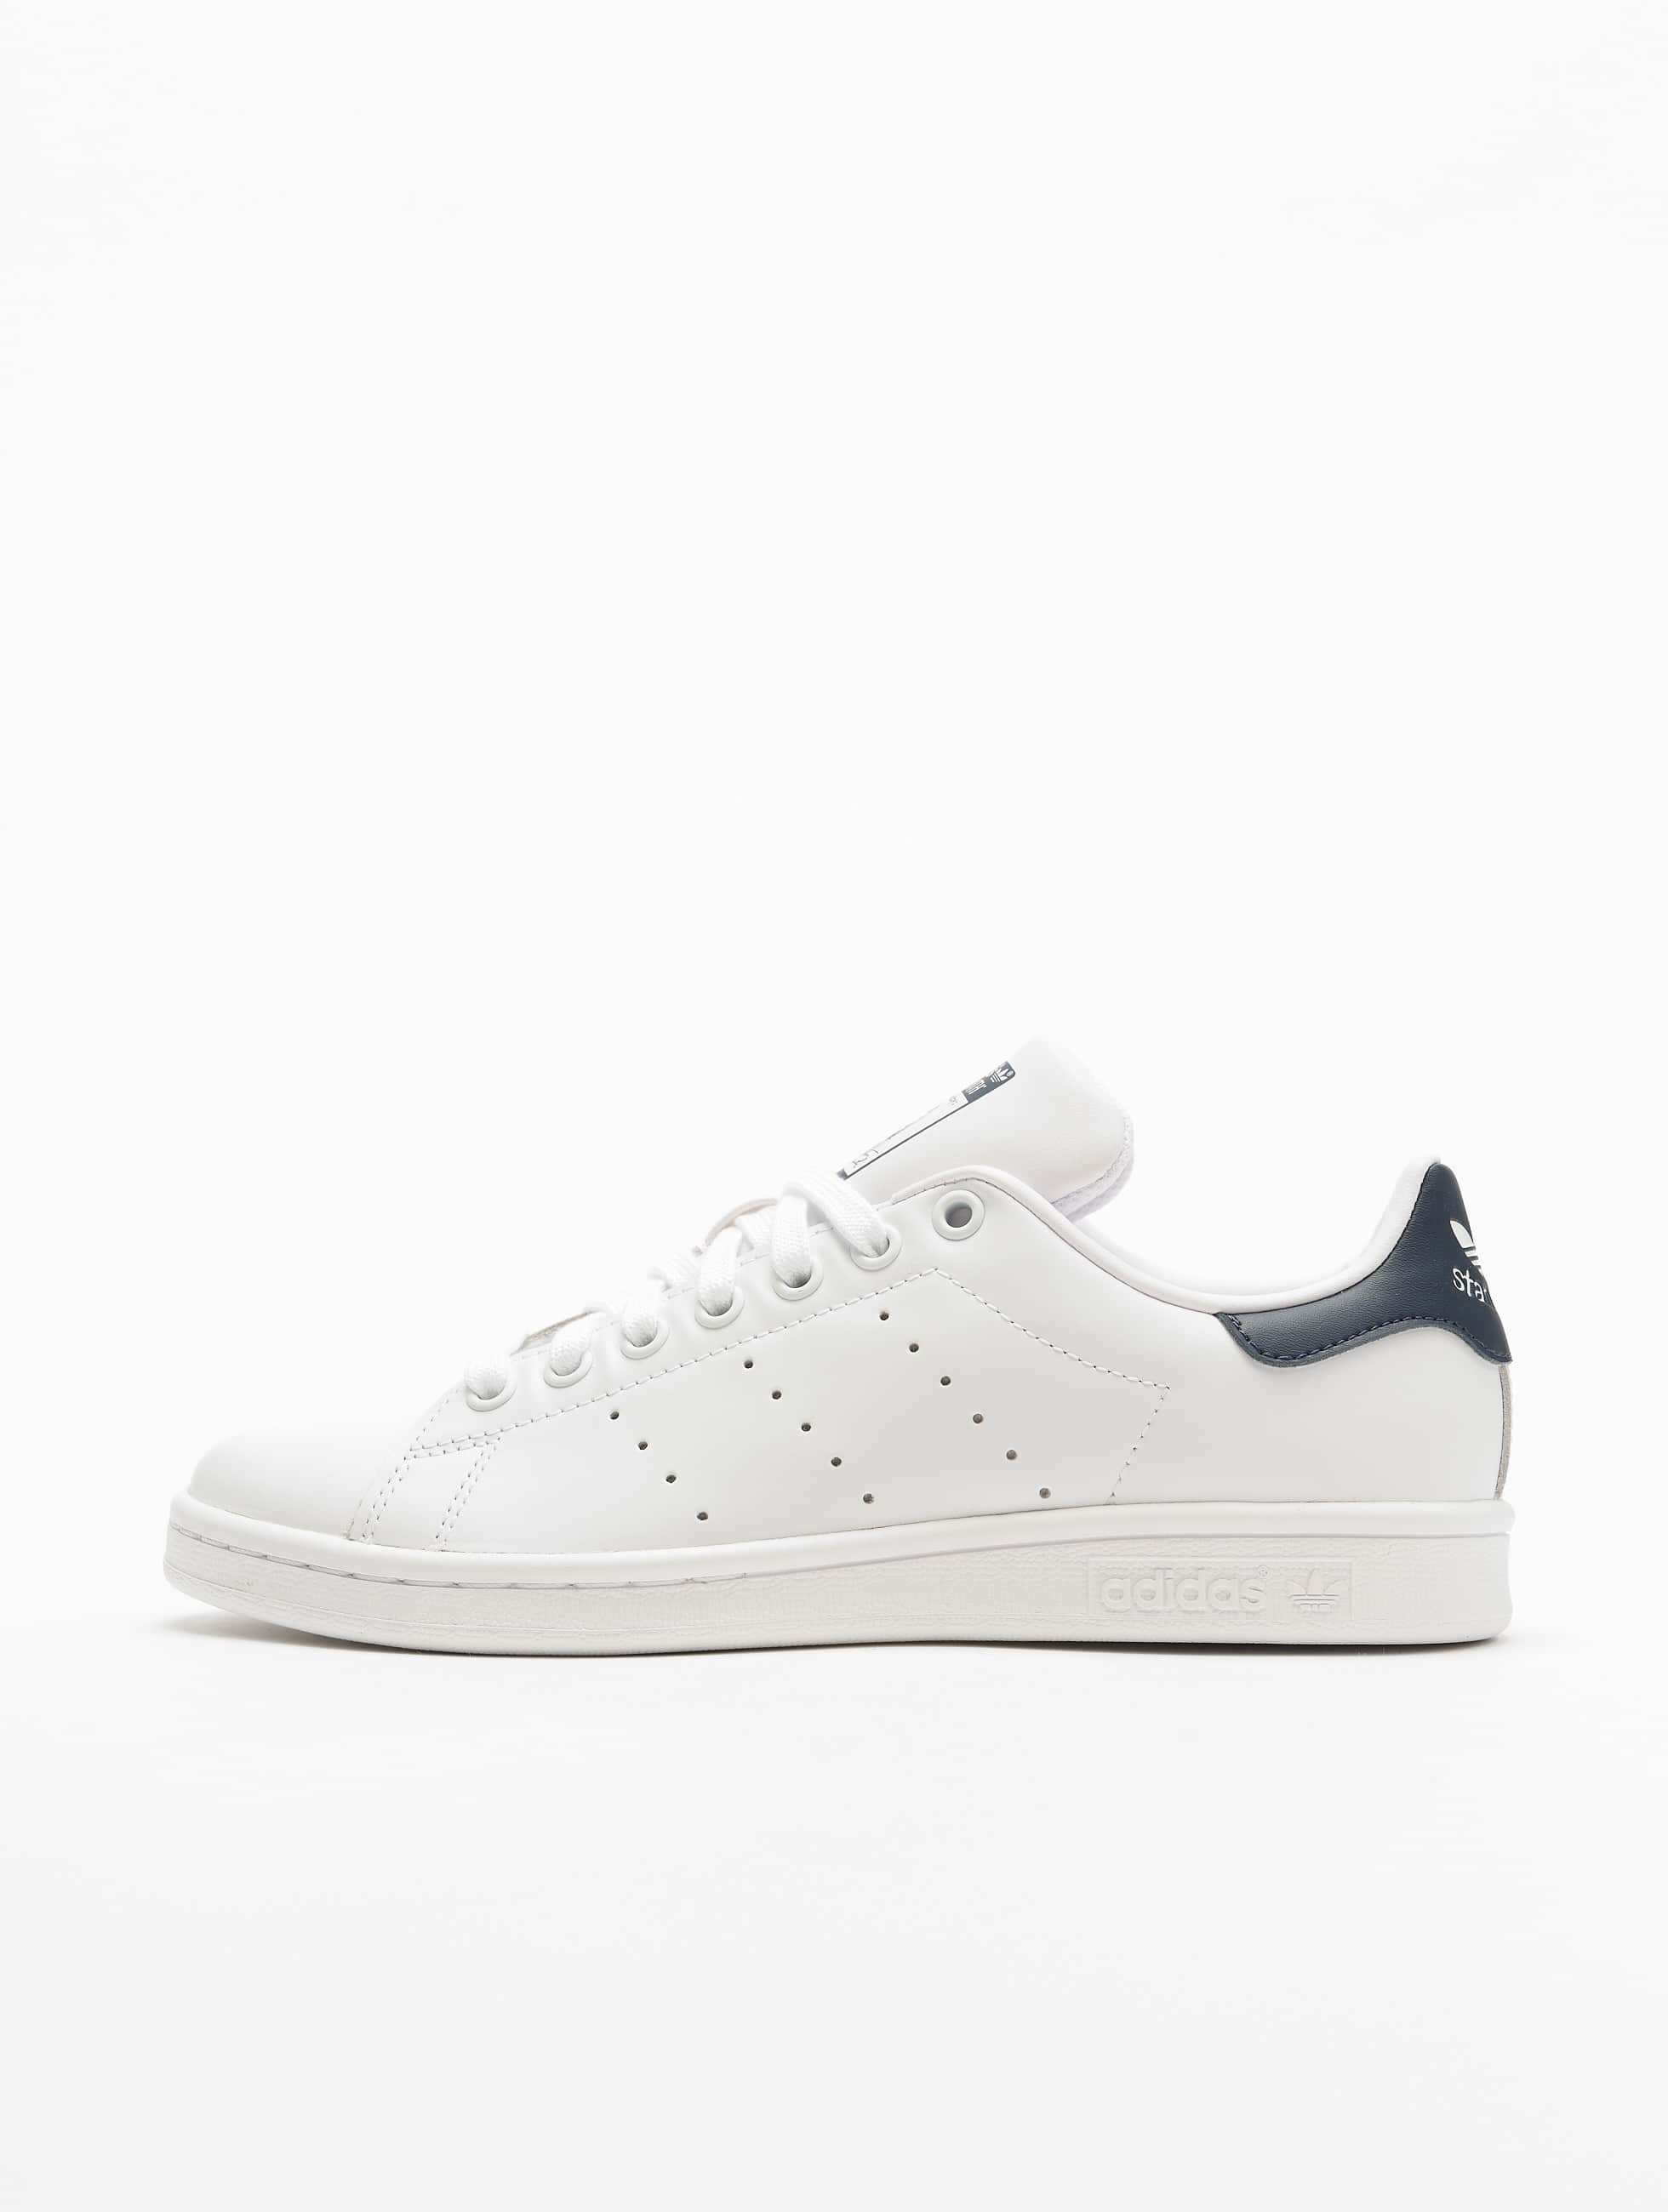 adidas stan smith blanc homme baskets adidas acheter pas cher chaussures 186647. Black Bedroom Furniture Sets. Home Design Ideas